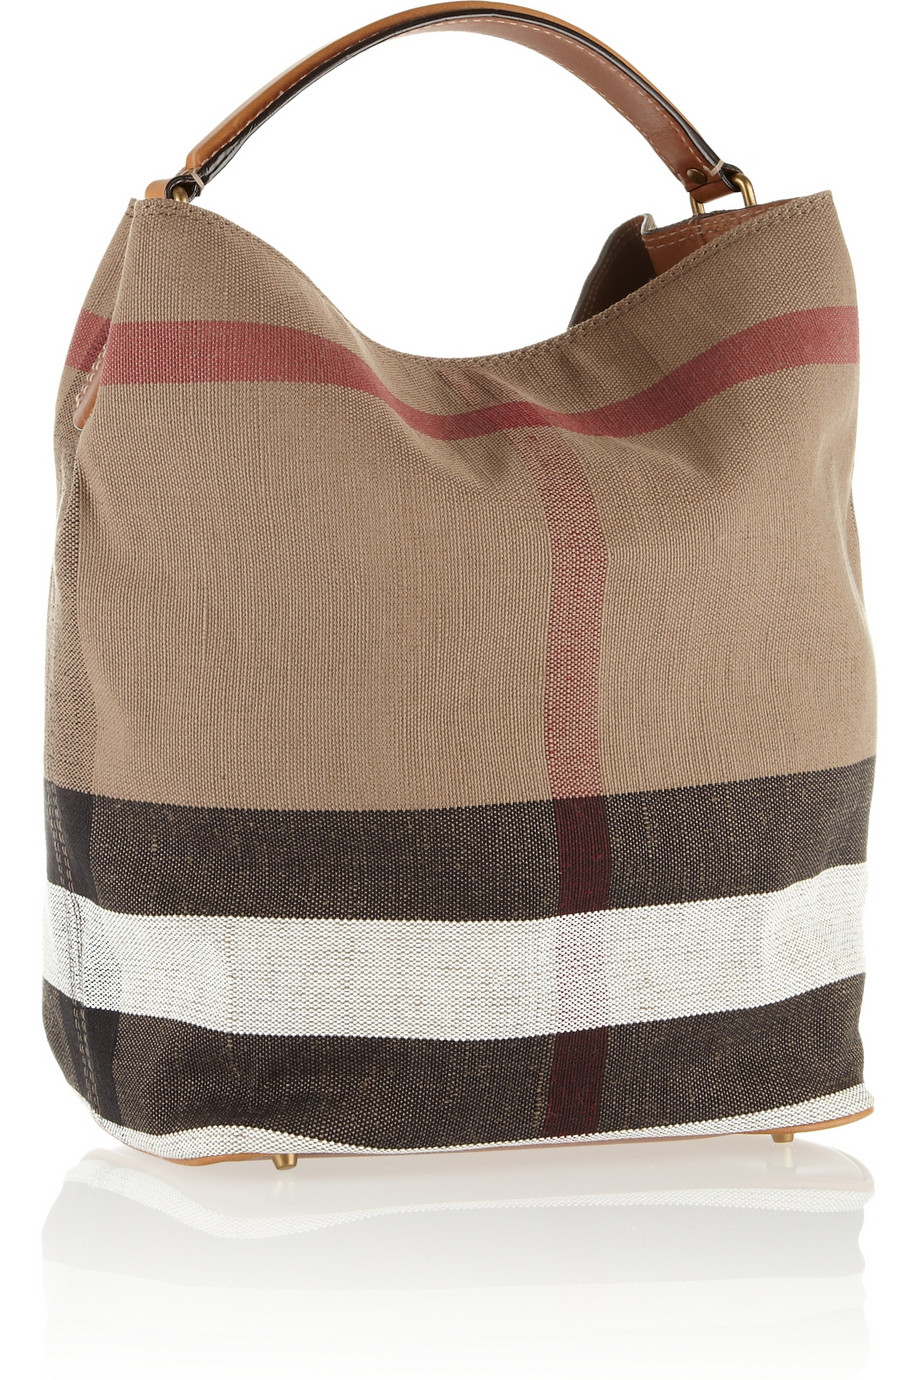 burberry checked canvas hobo bag in brown lyst